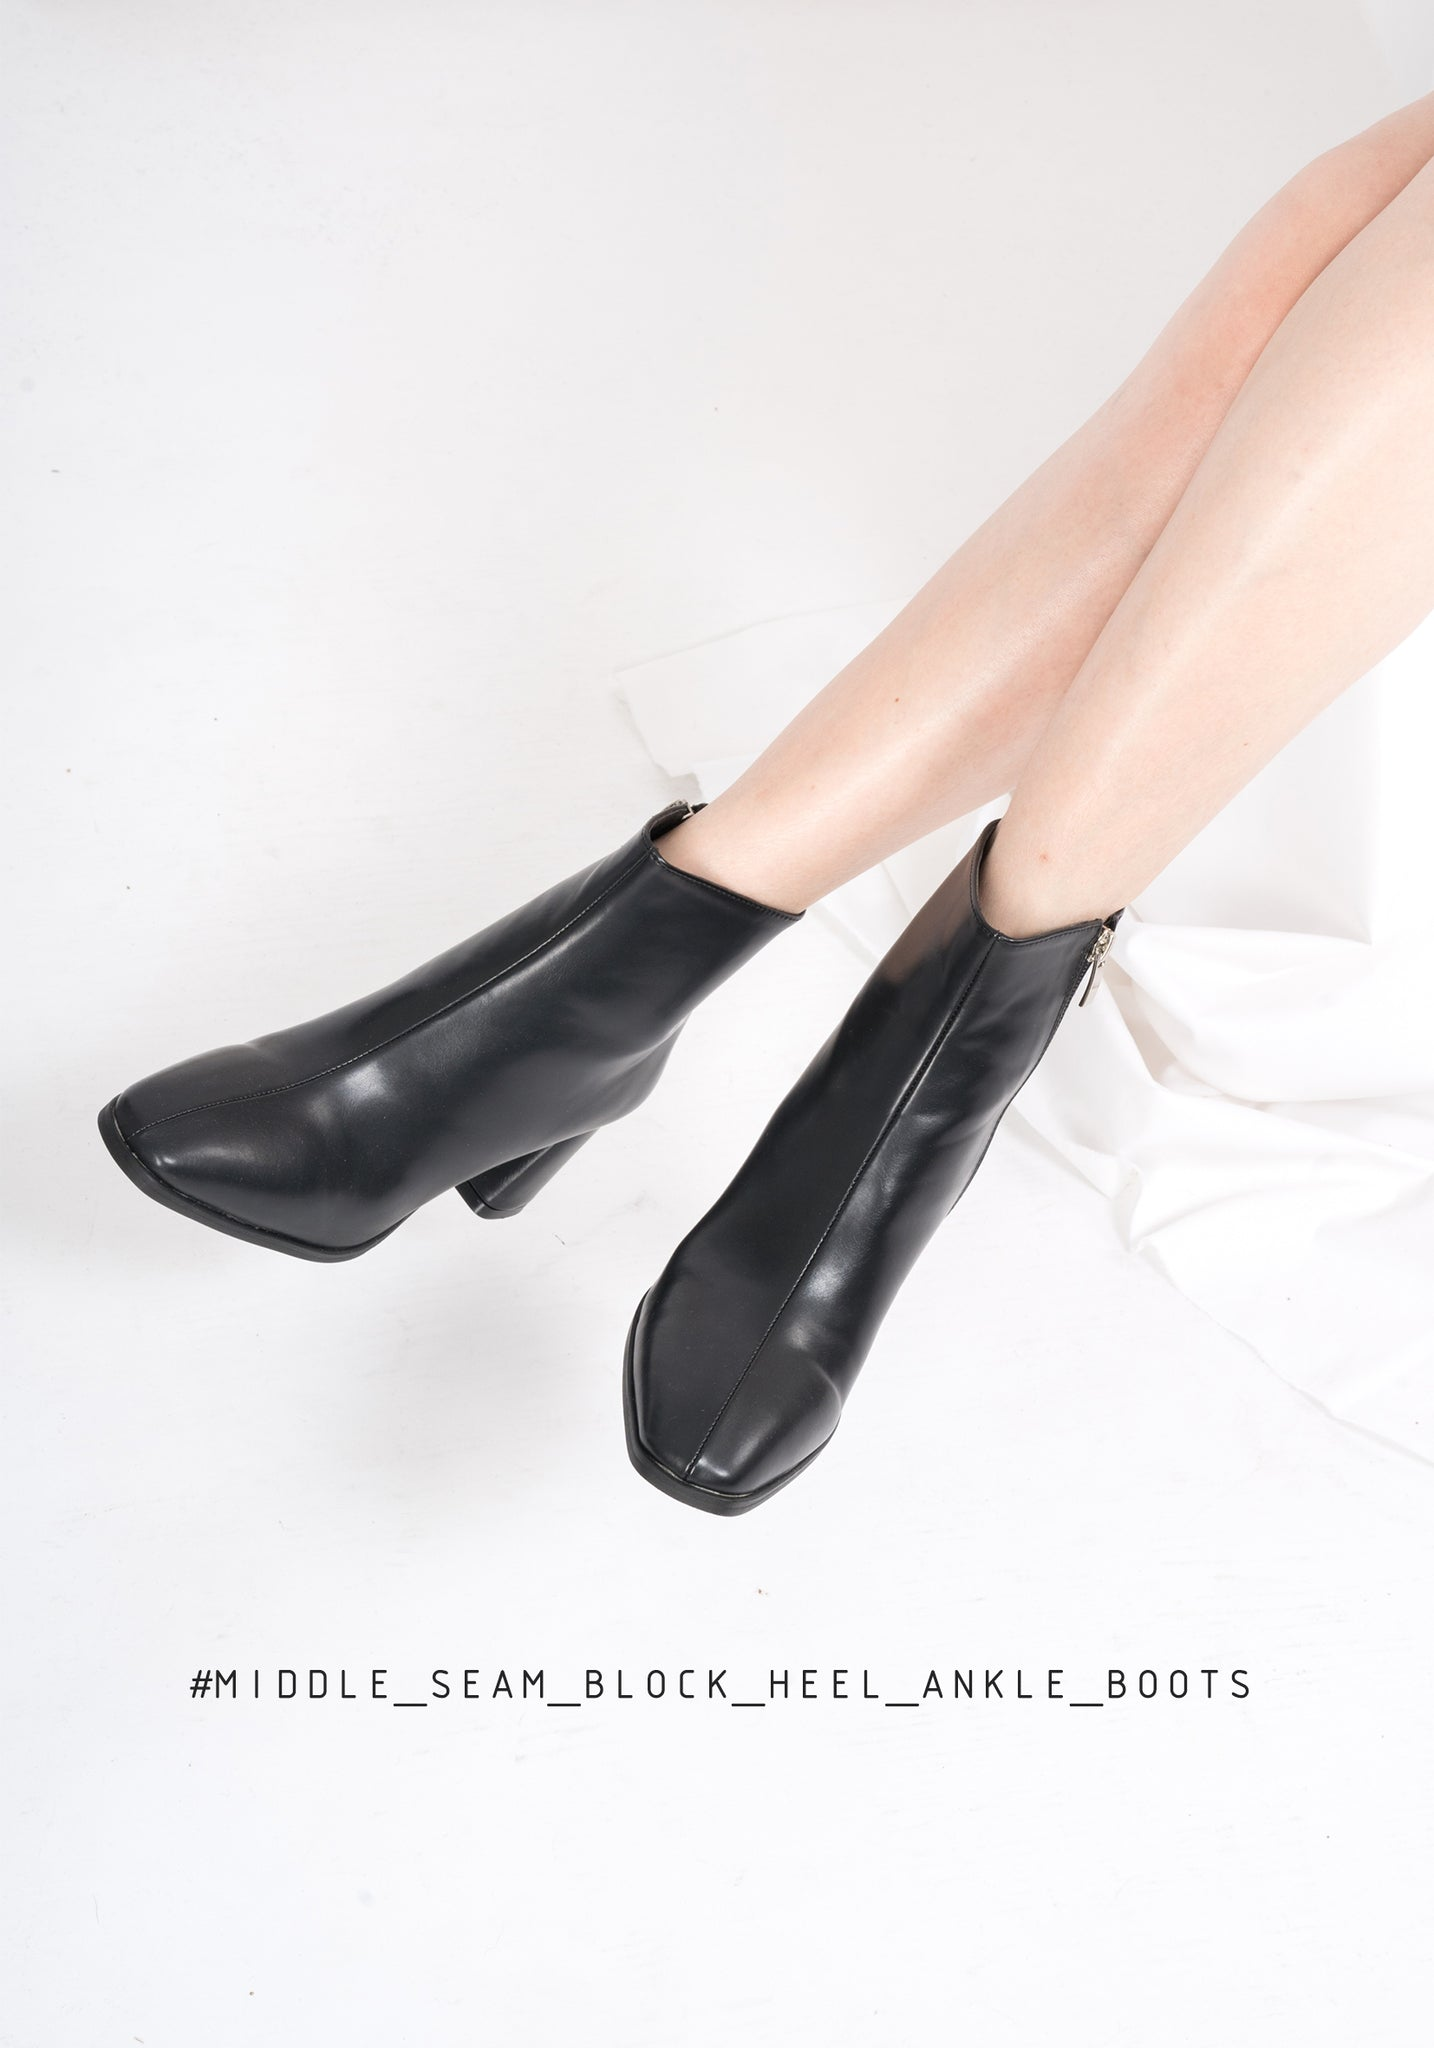 Middle Seam Block Heel Ankle Boots